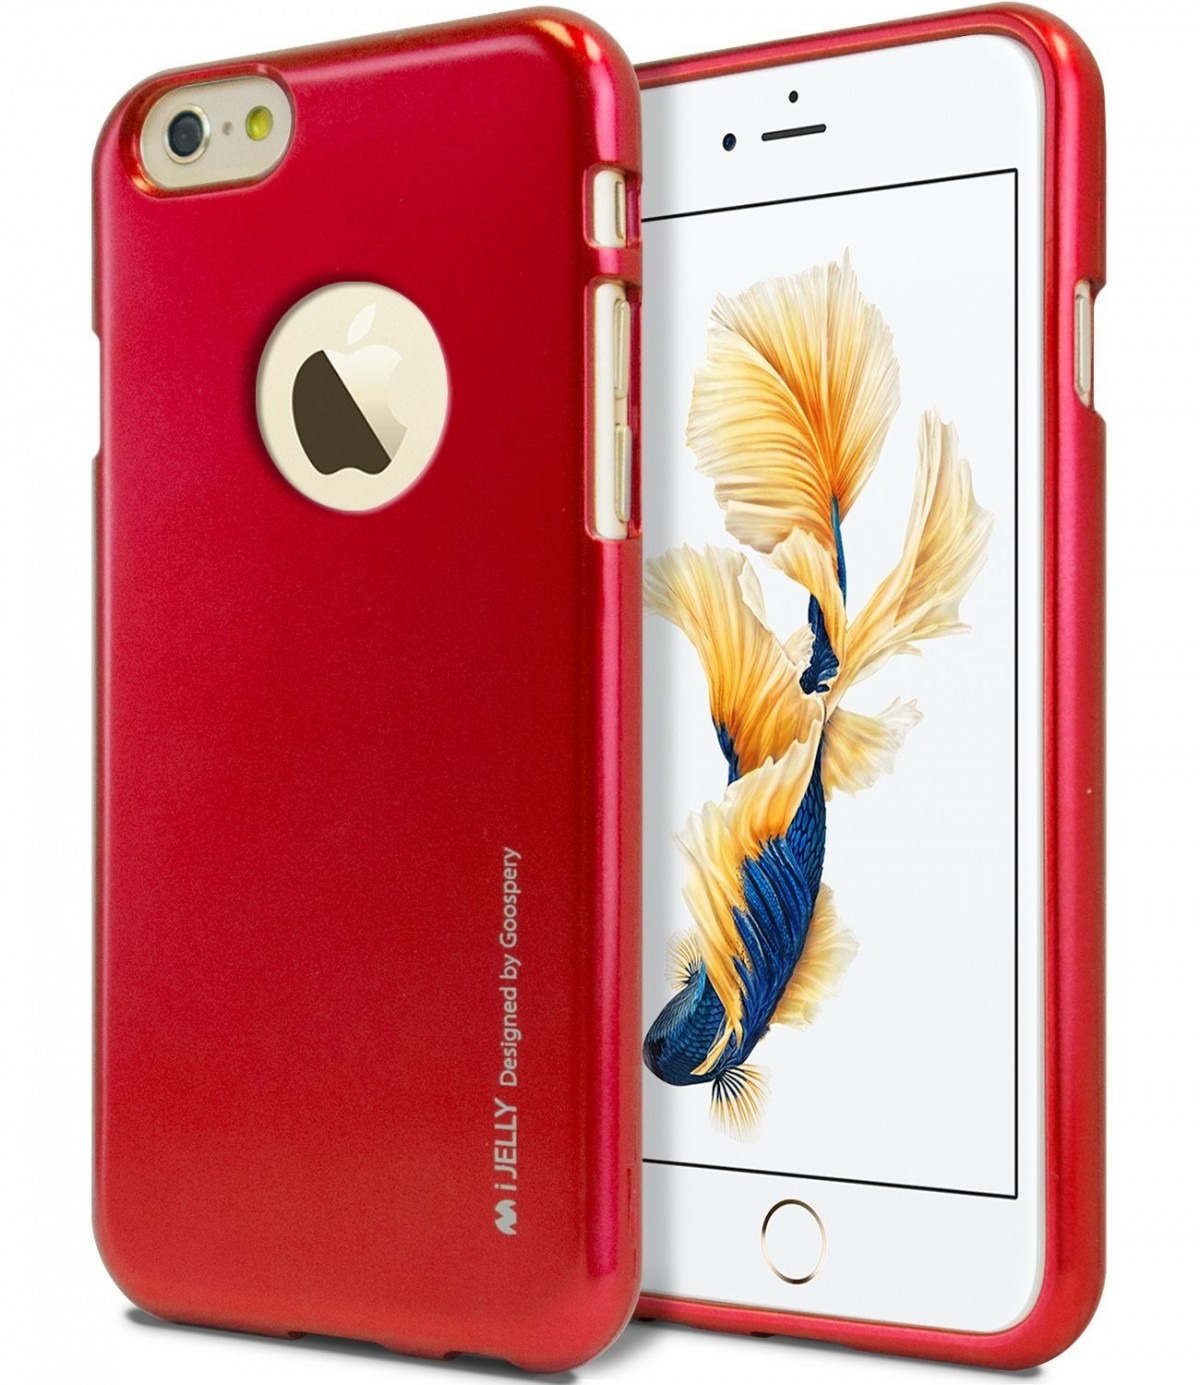 Pouzdro iJelly Metal Goospery Apple iPhone 6s Plus   6 Plus - Metalicky  vínové 22c8a1d66bc